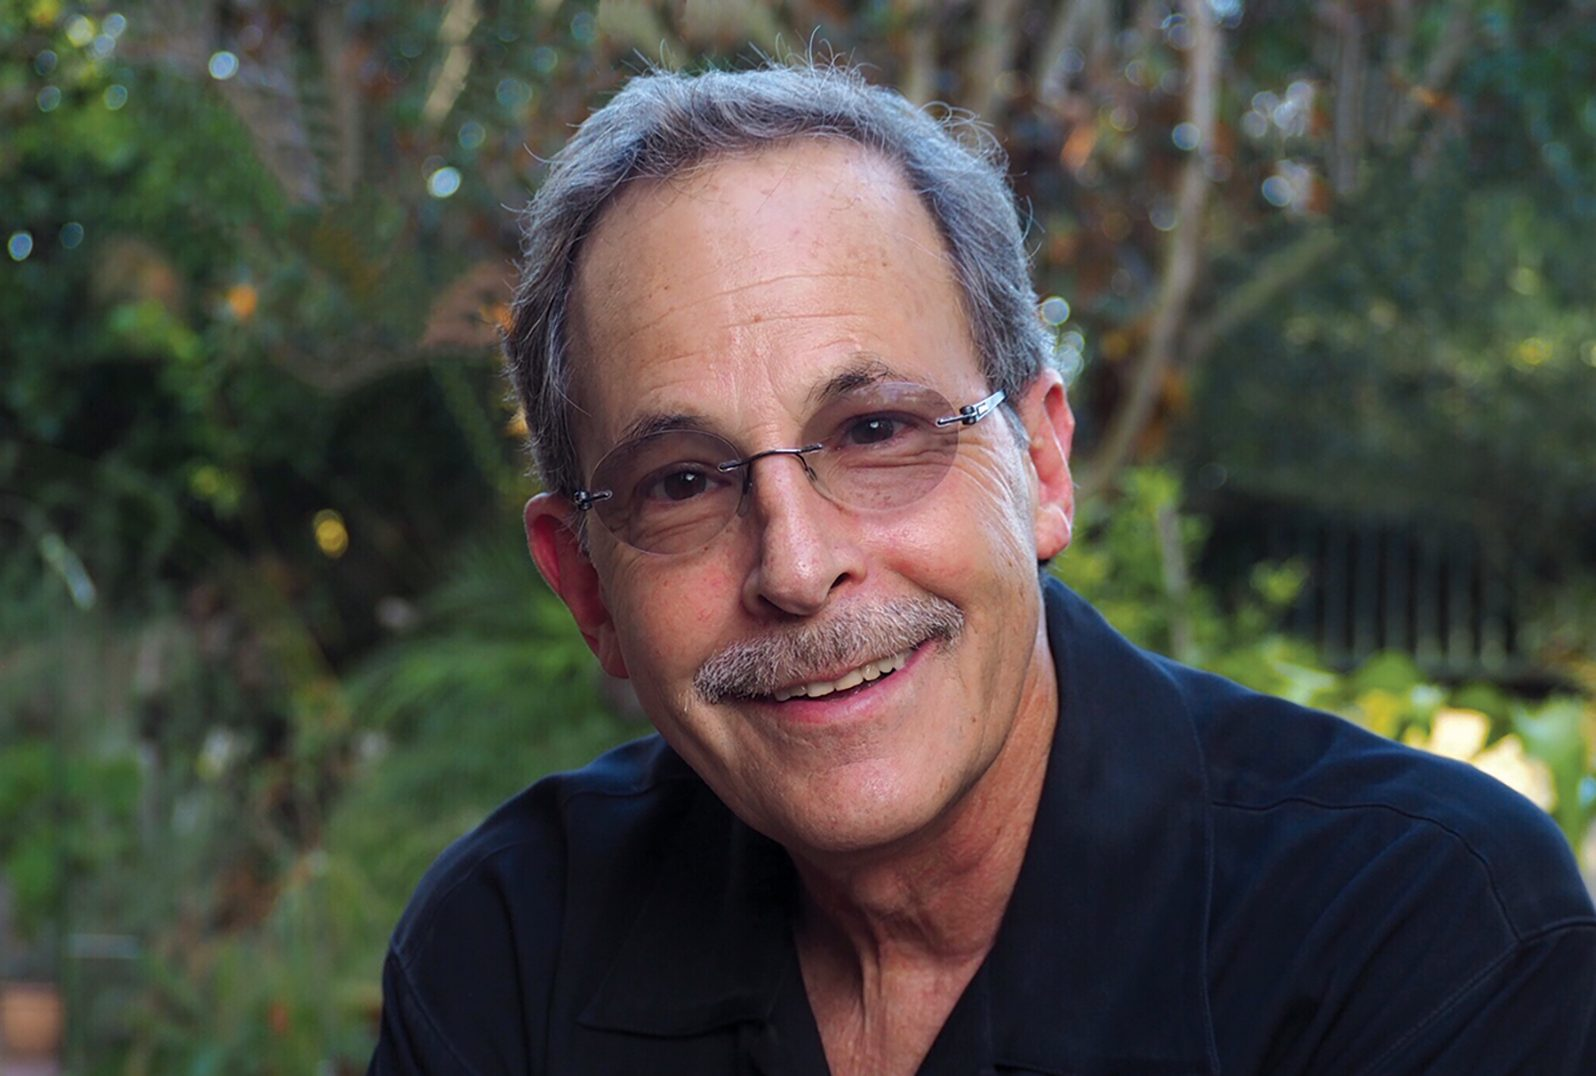 Dr. Mark Goldstein